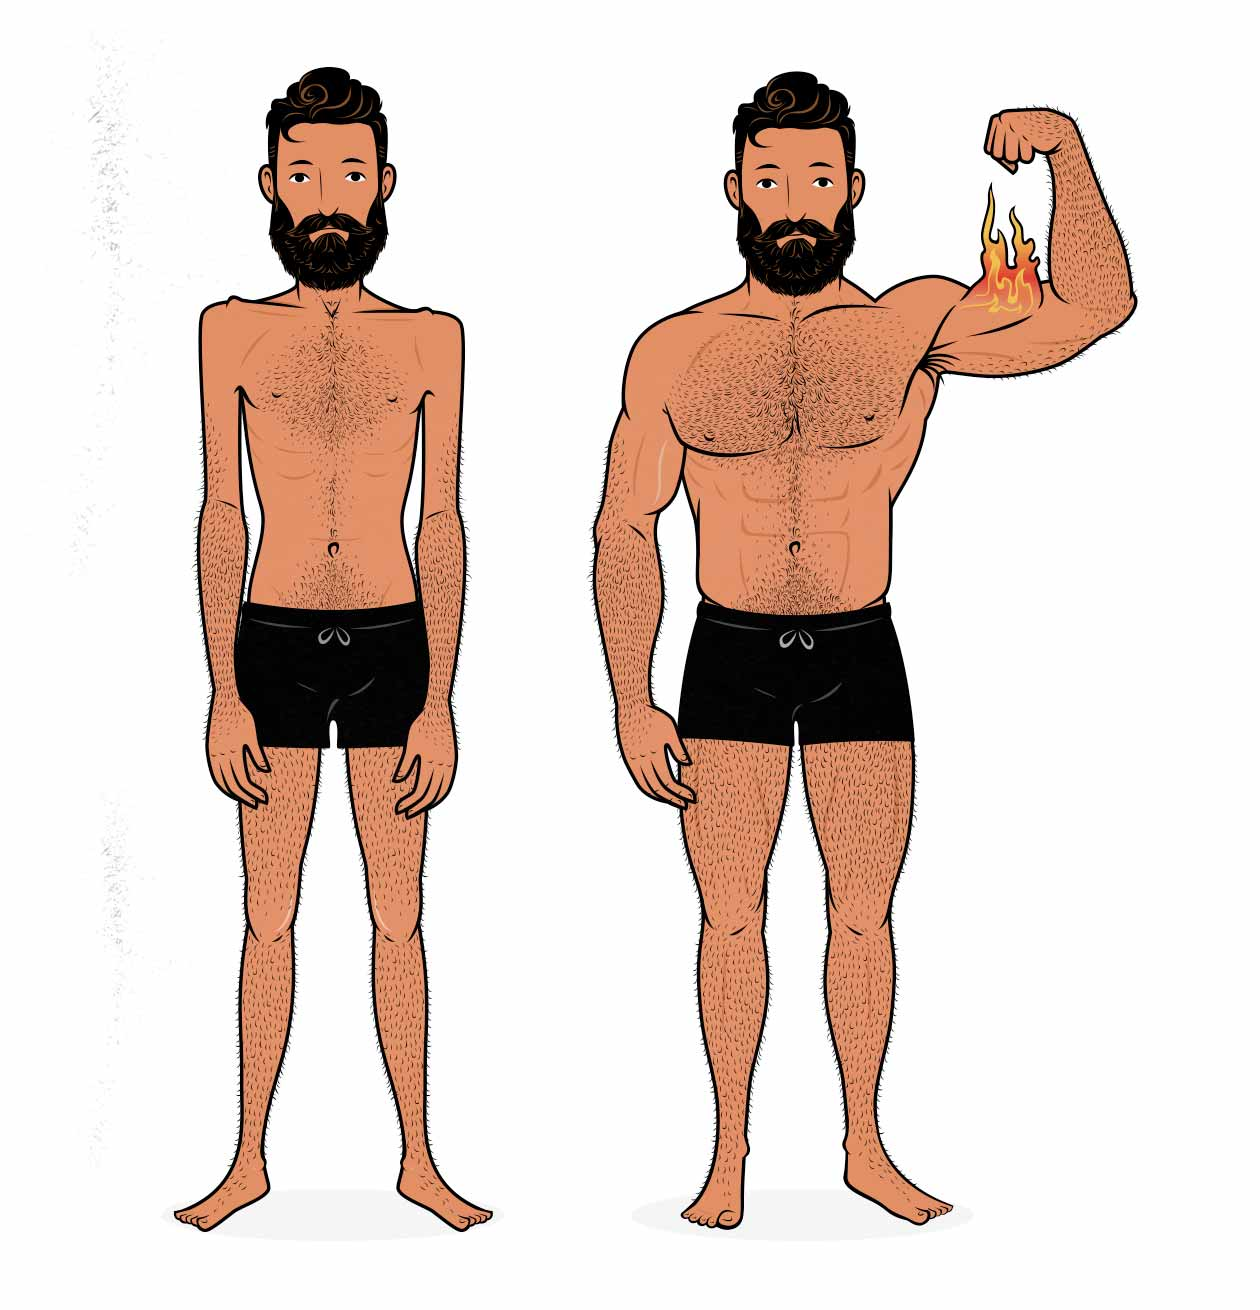 Before/after illustration of a skinny man becoming muscular.